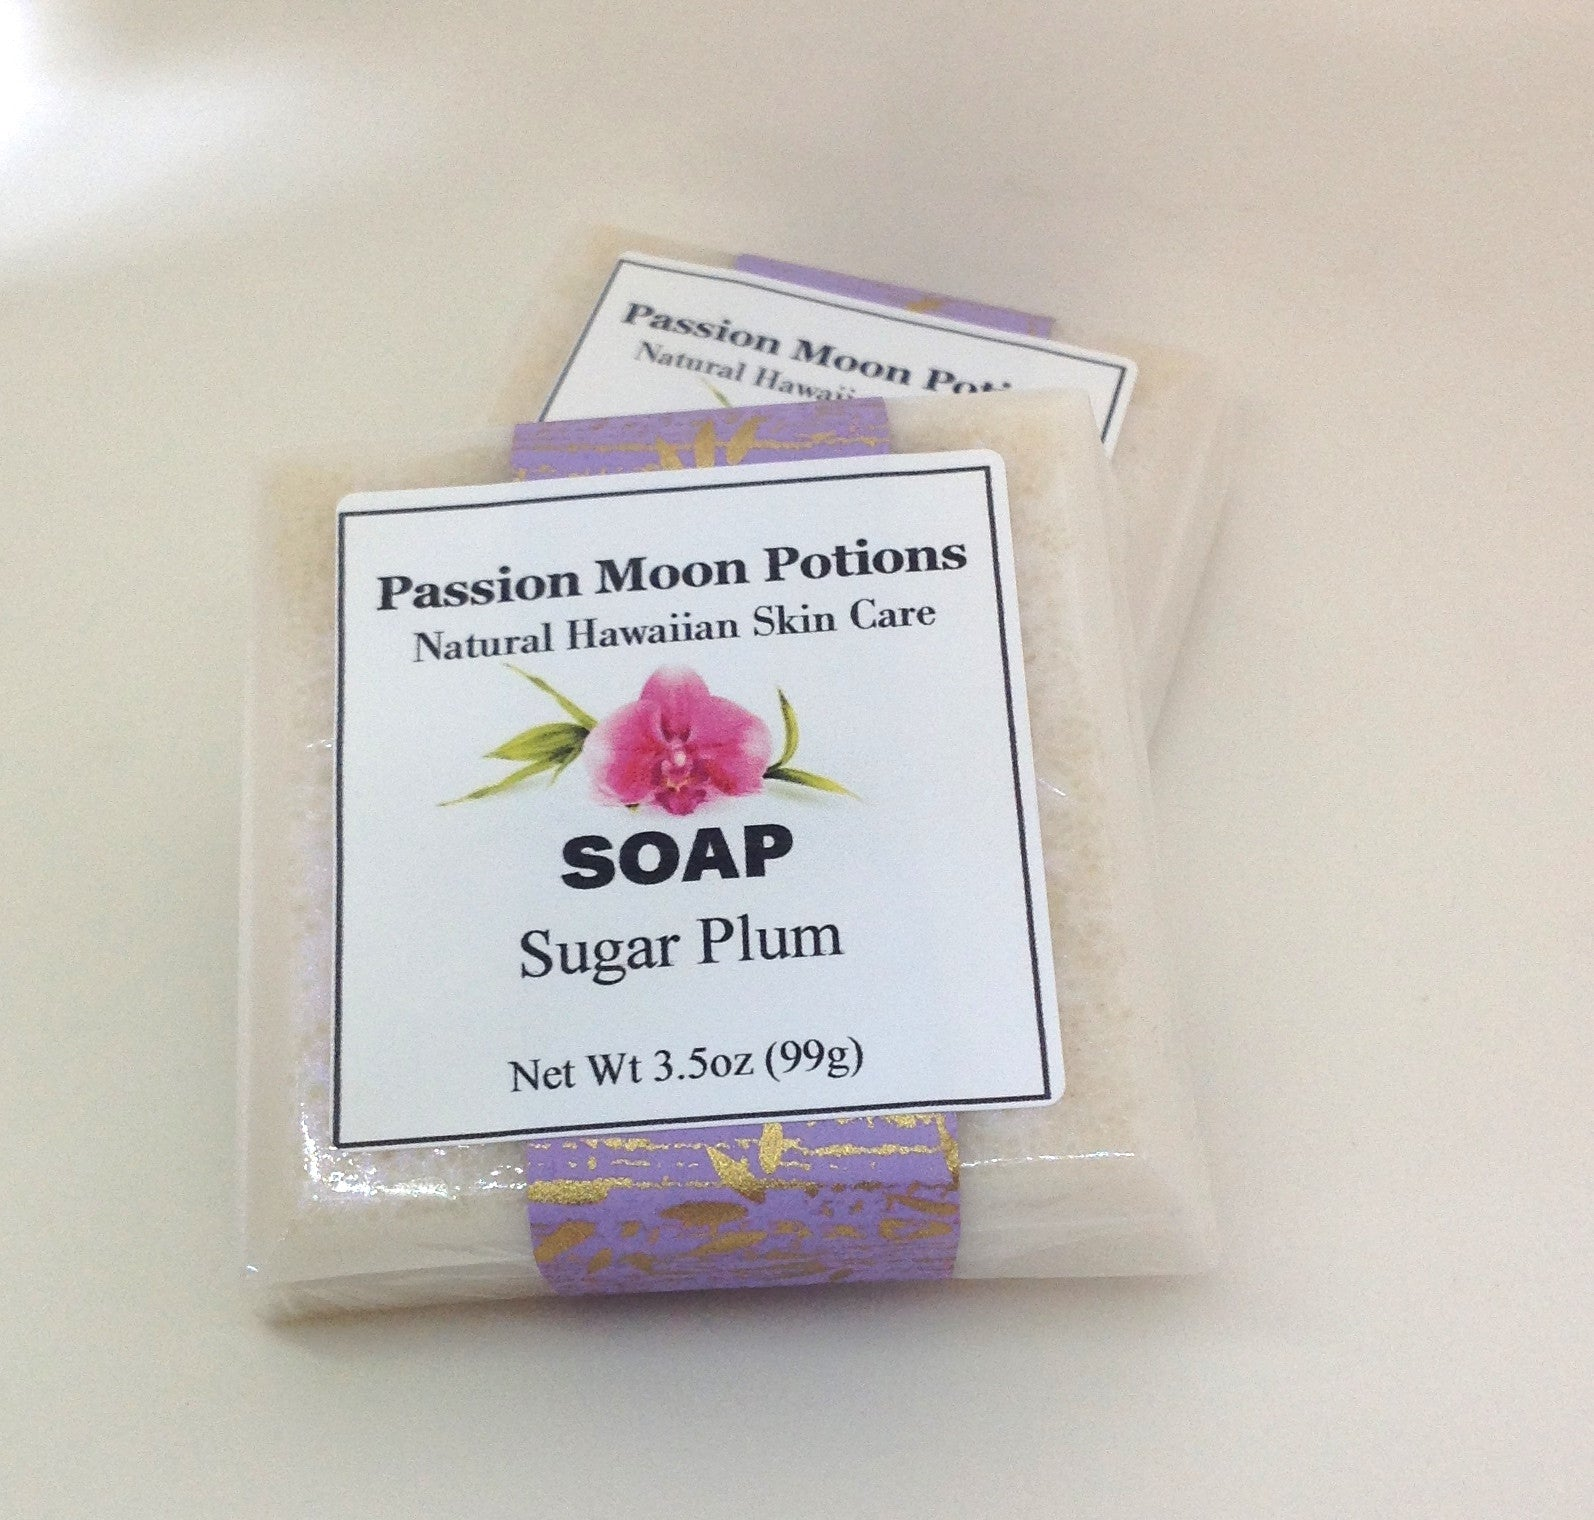 Sugar Plum Soap - Passion Moon Potions - 1